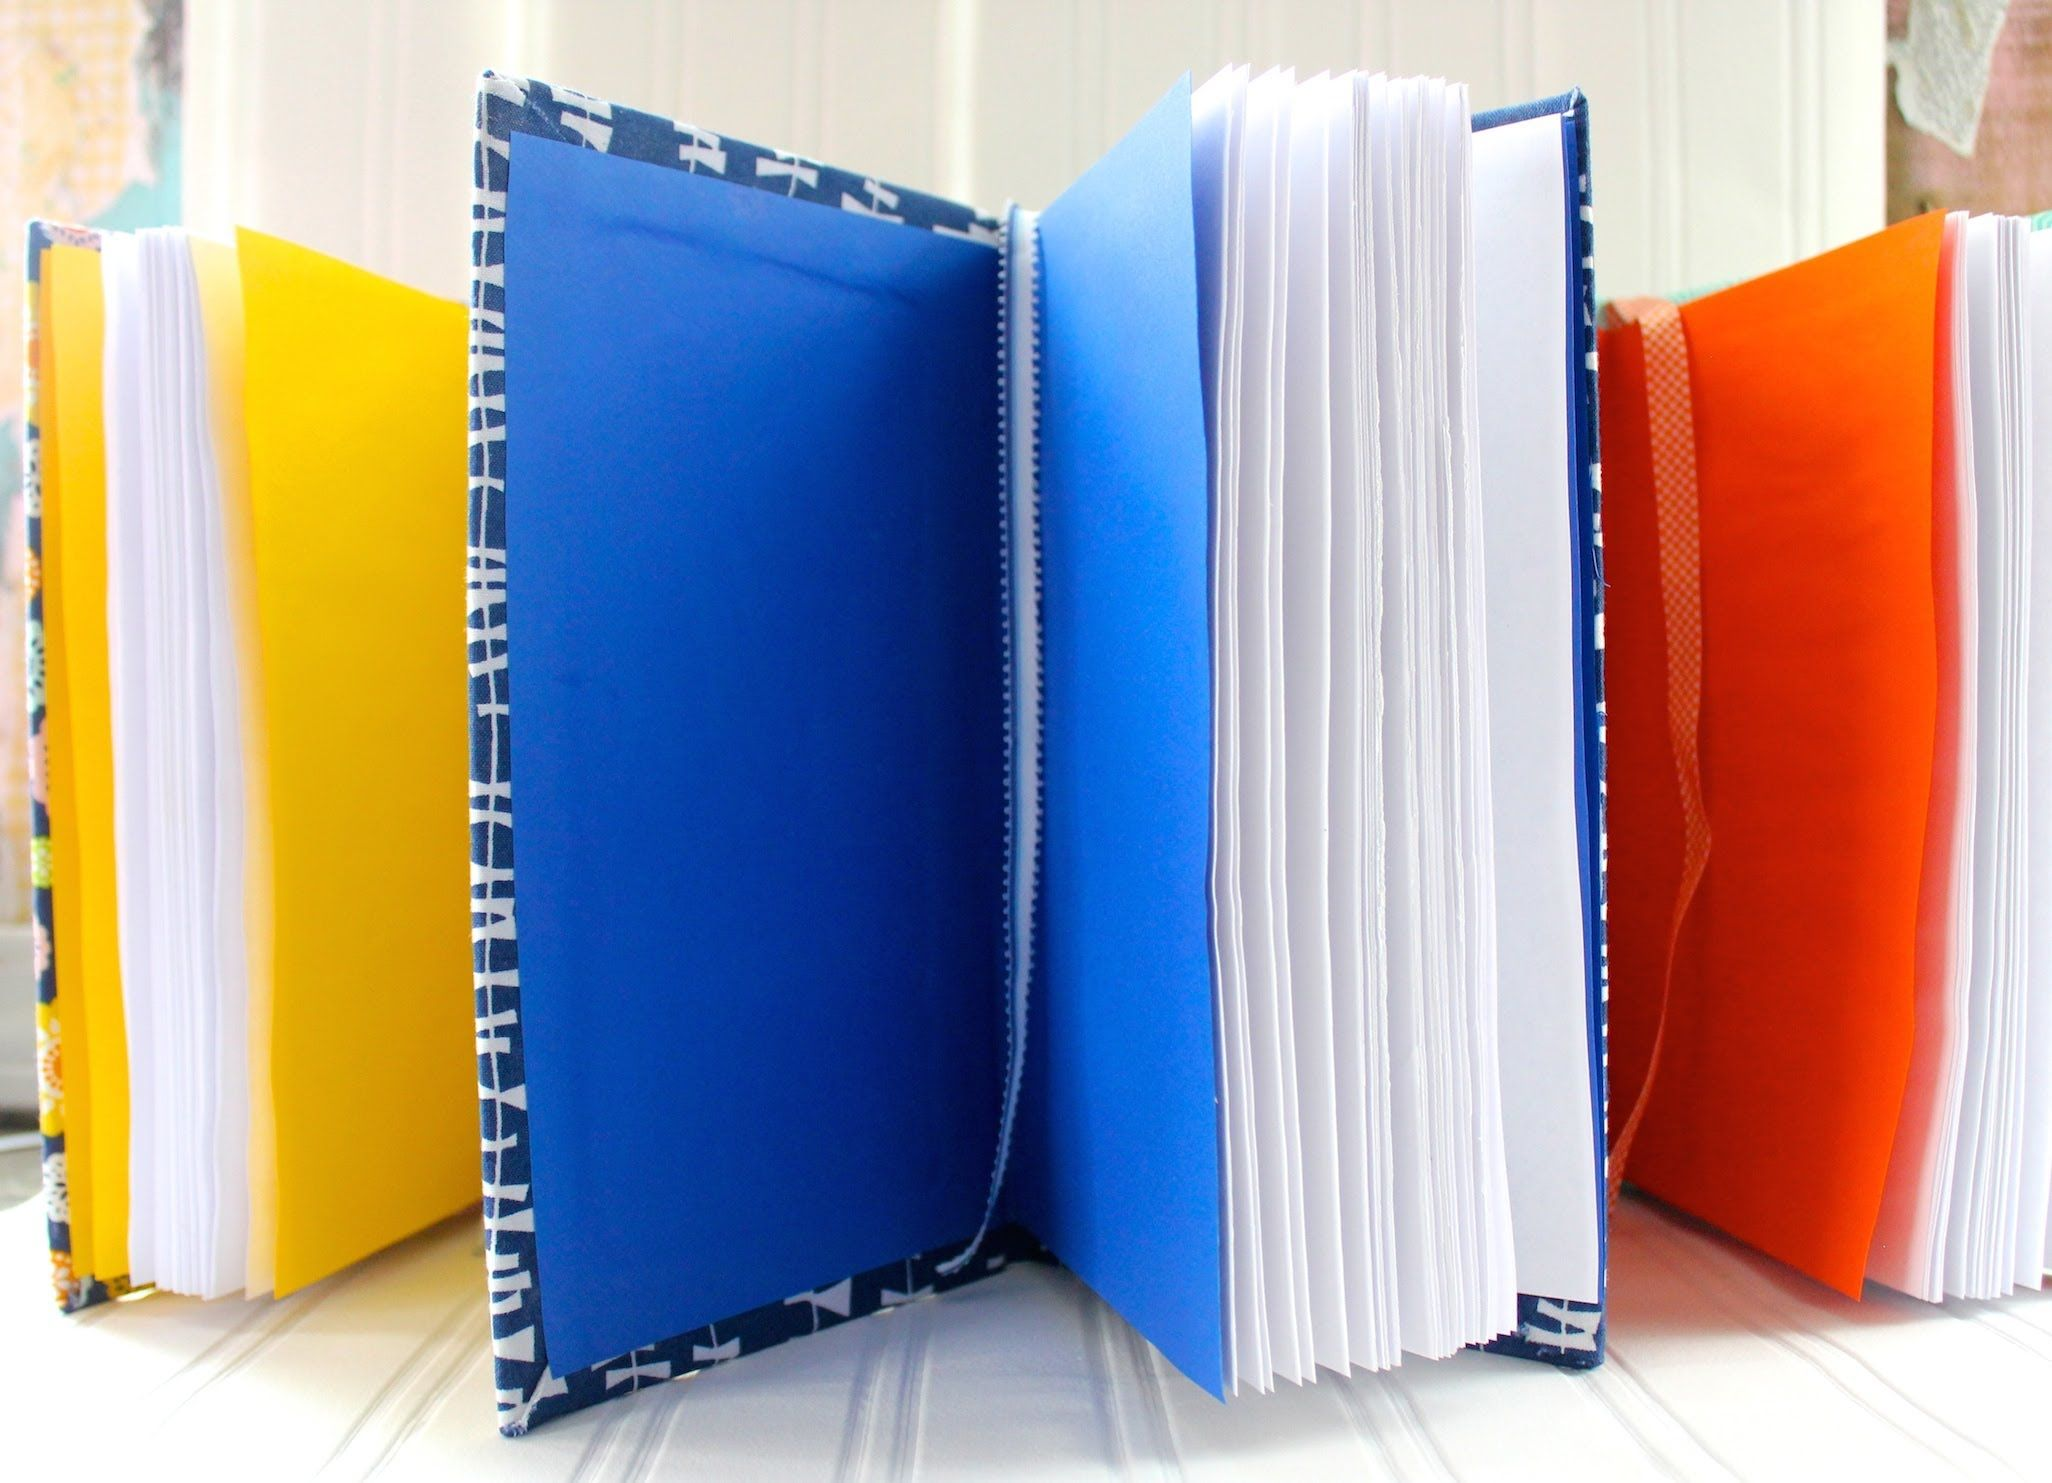 Make A Hardcover Book (part 1 of 2) Diy hardcover books